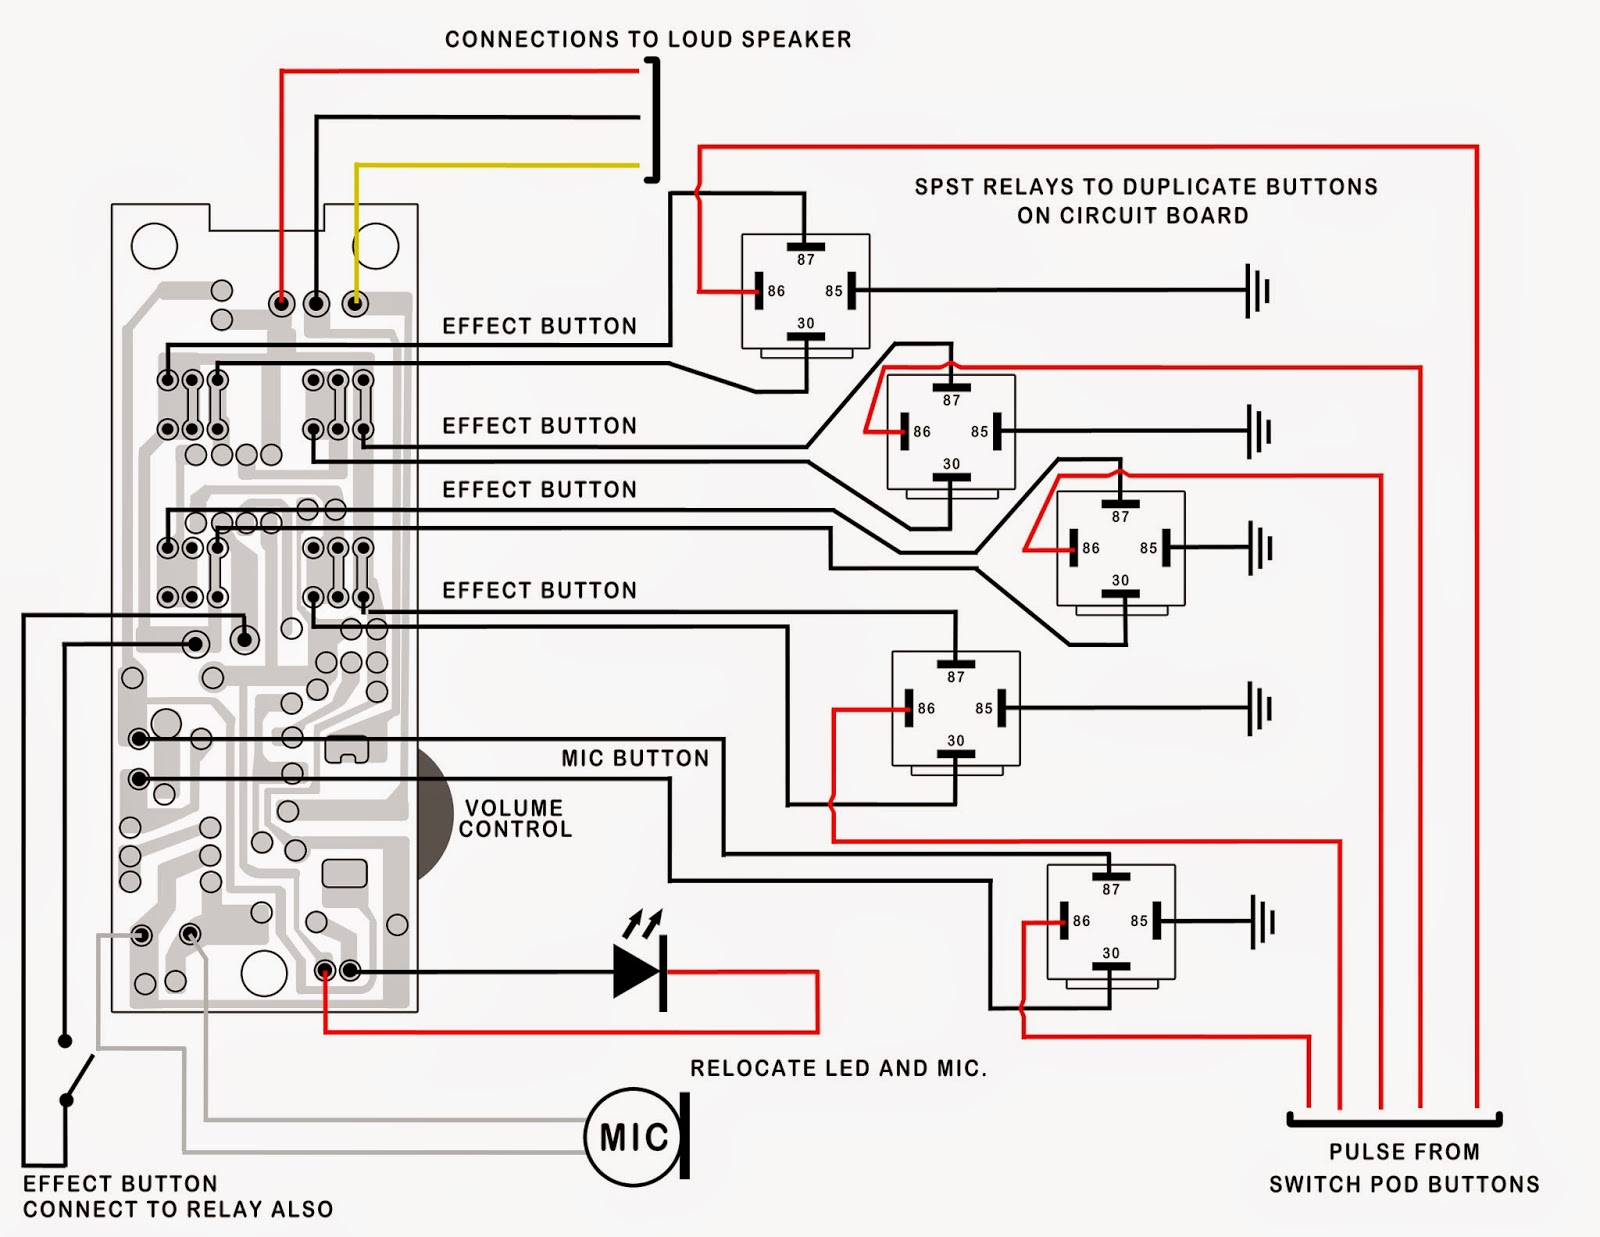 October 2014 Circuit Wiring Diagram Must Know Data The Pinout For An Lm741 Is Shown Below Library I Think Have Connections On